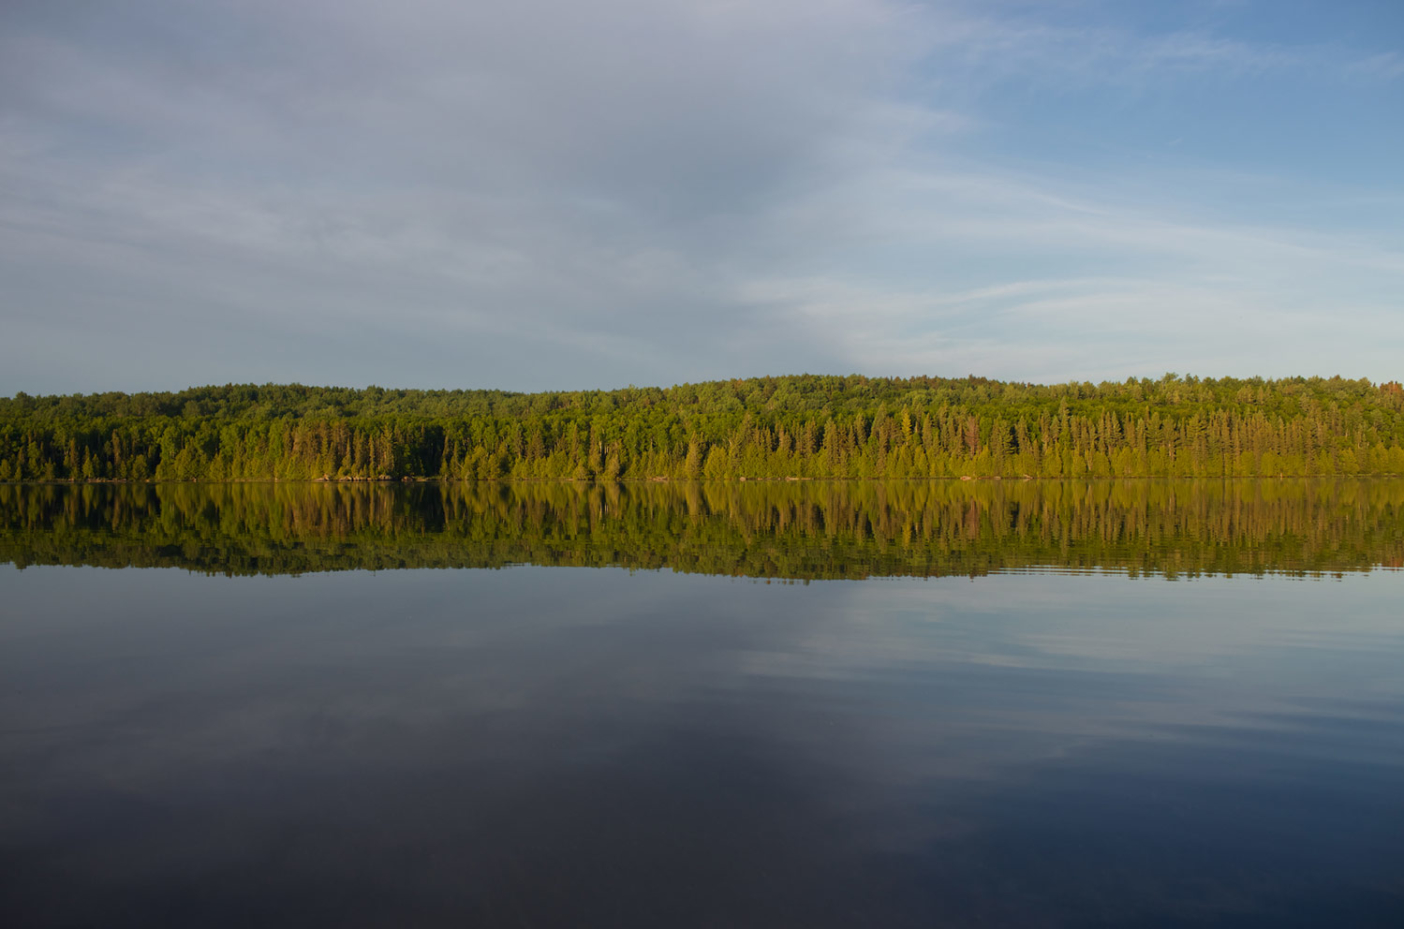 Solitude and stillness, as found on one of the thousands of pristine lakes that make up the 1.1-million-acre Boundary Waters Canoe Area Wilderness in northern Minnesota. Photo: Nate Ptacek